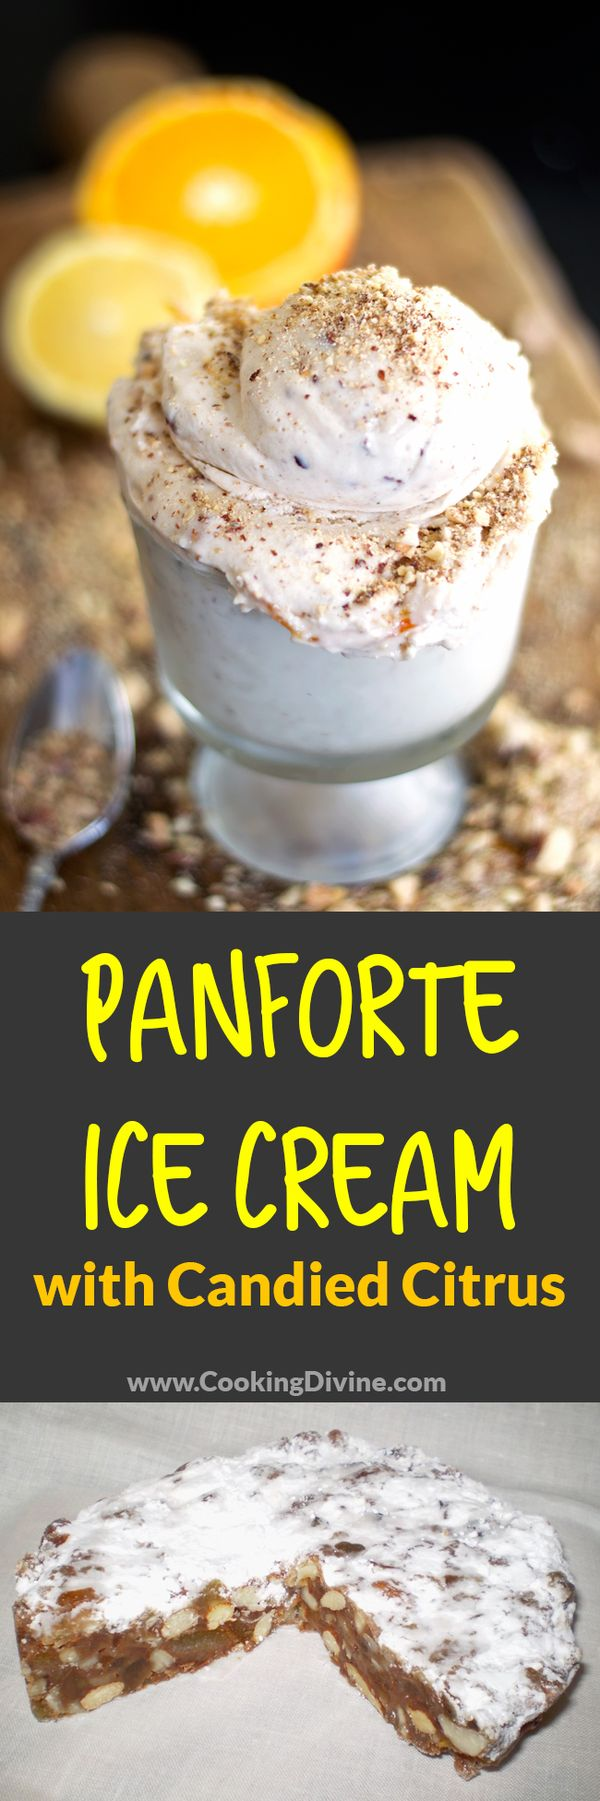 Panforte Ice Cream Recipe: This ice cream mimics the traditional Italian Dessert cake and is guaranteed to blow your guests away!